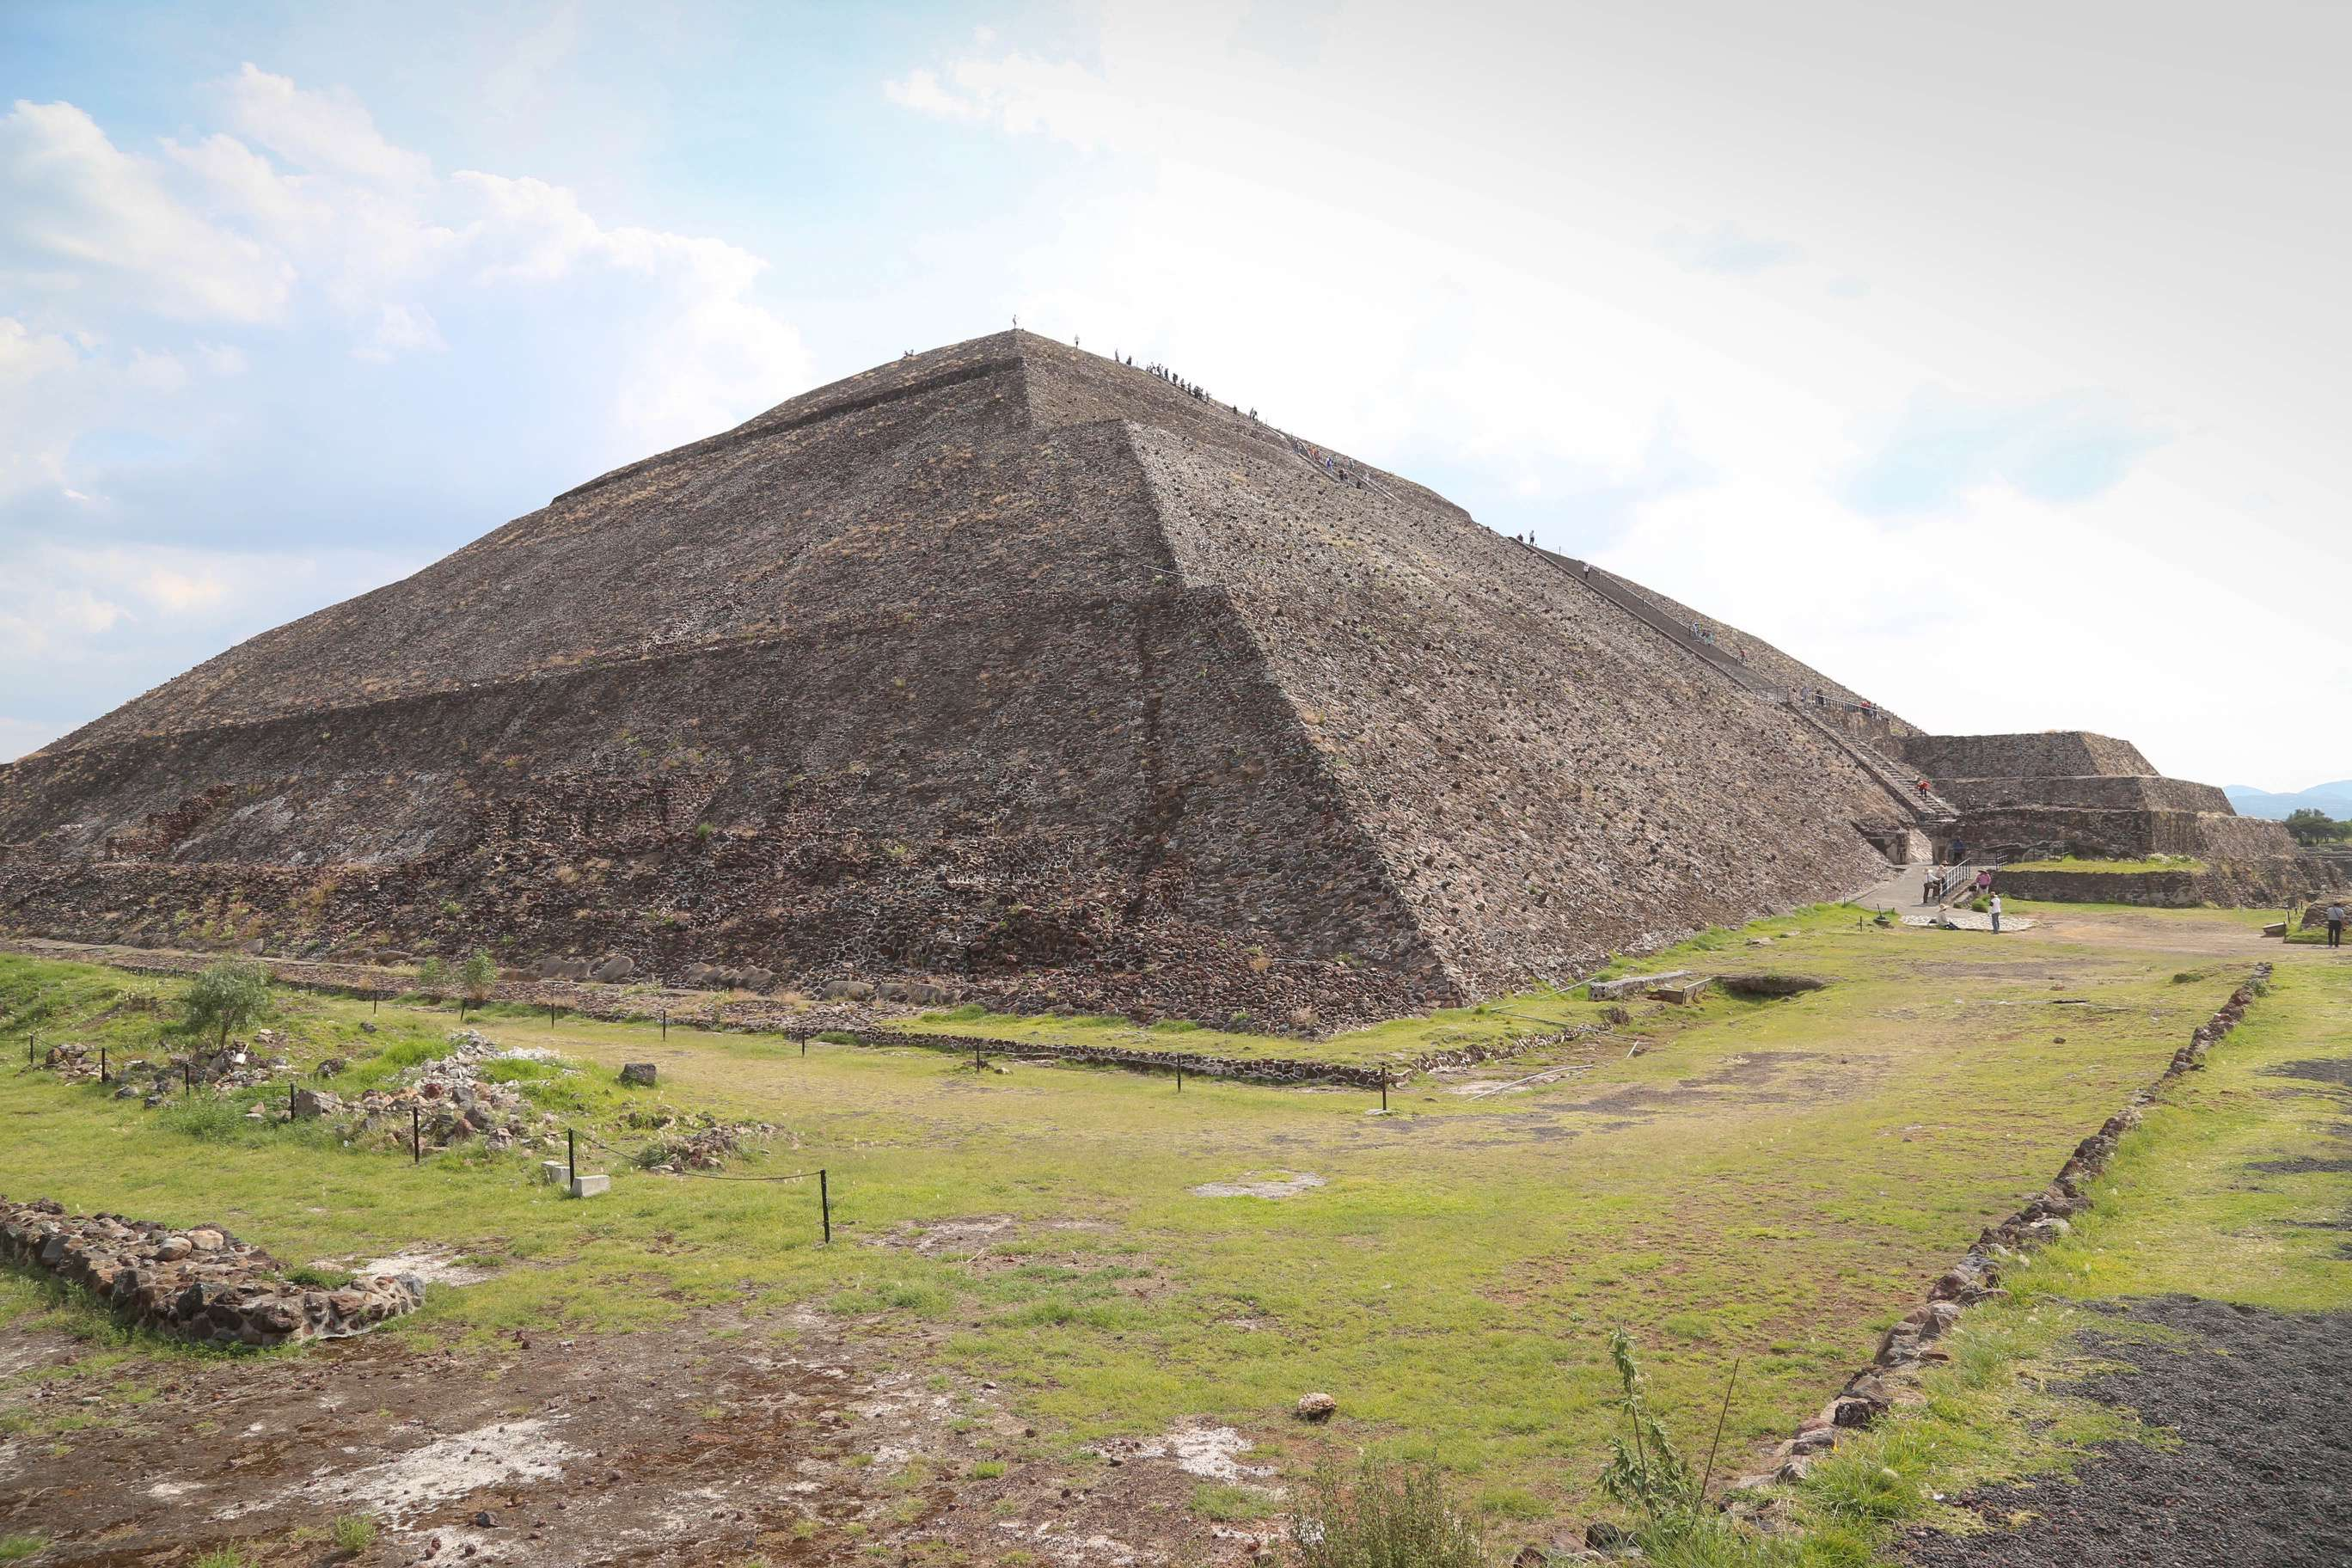 Teotihuacan's Pyramid of the Sun is one of the most popular places to visit and people carefully climb the steep stairs for a view at the top.